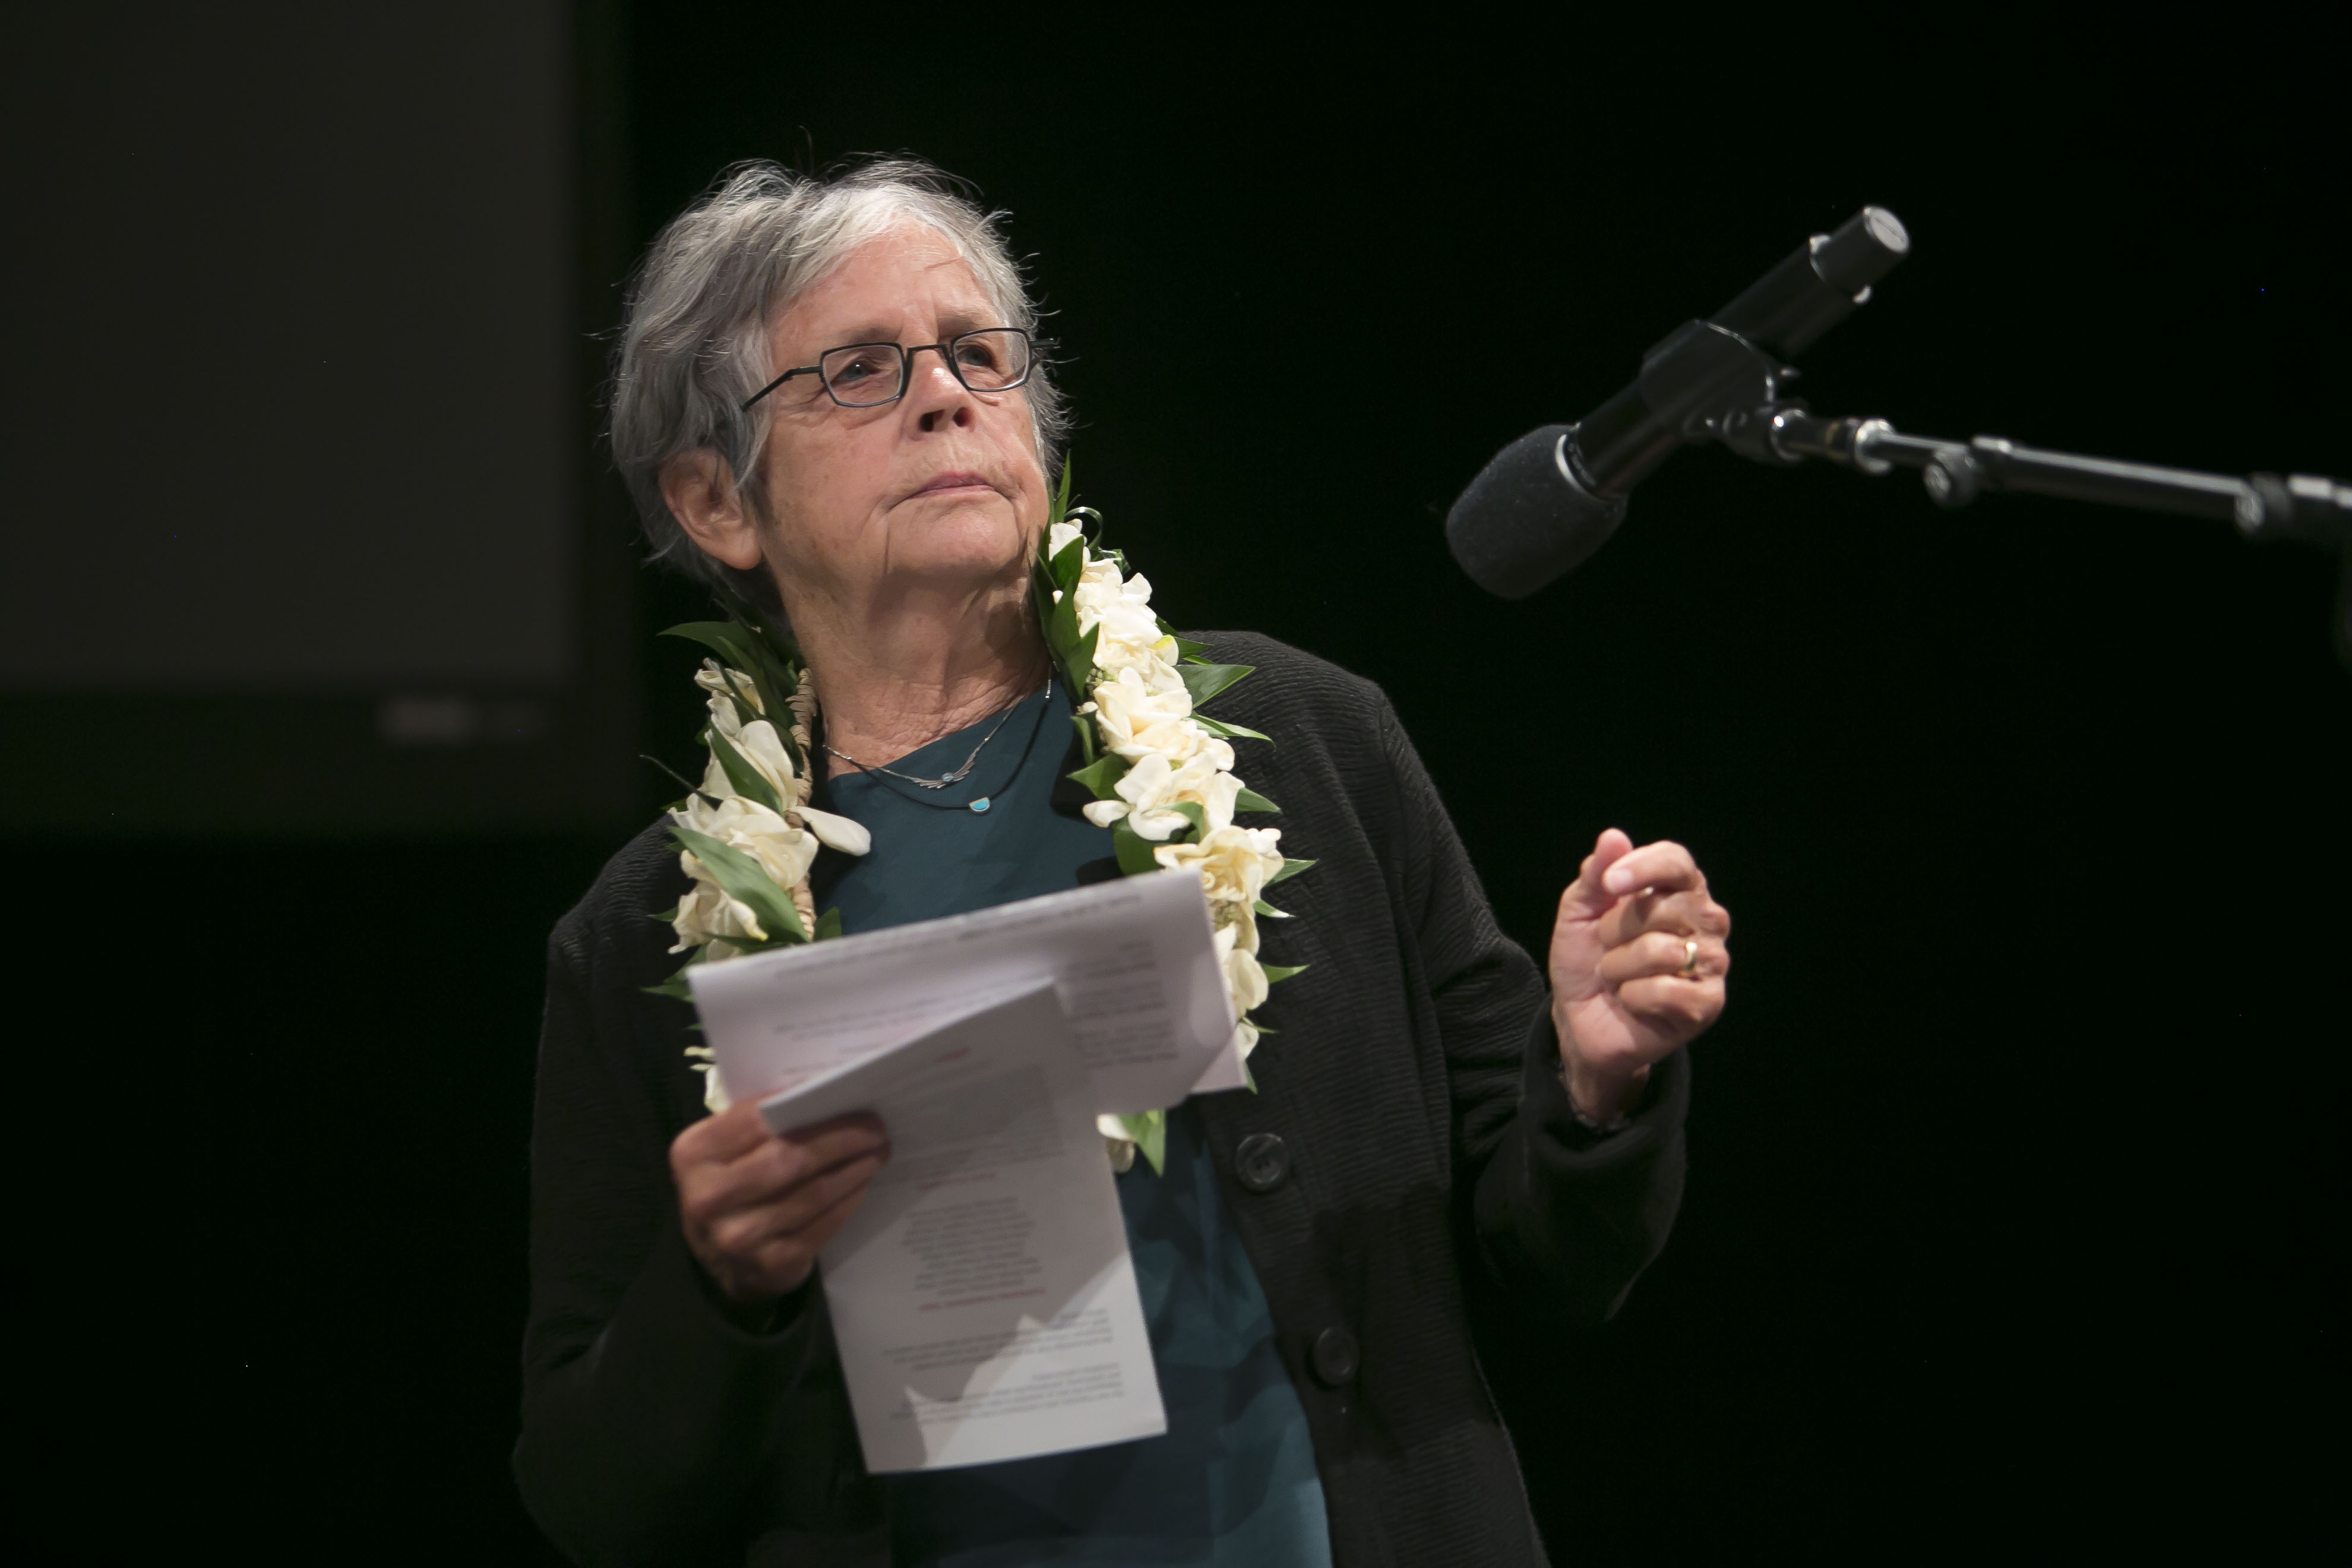 2019 Awardee Joan Pinkvoss reads onstage at the 2019 Annual Grants Convening.